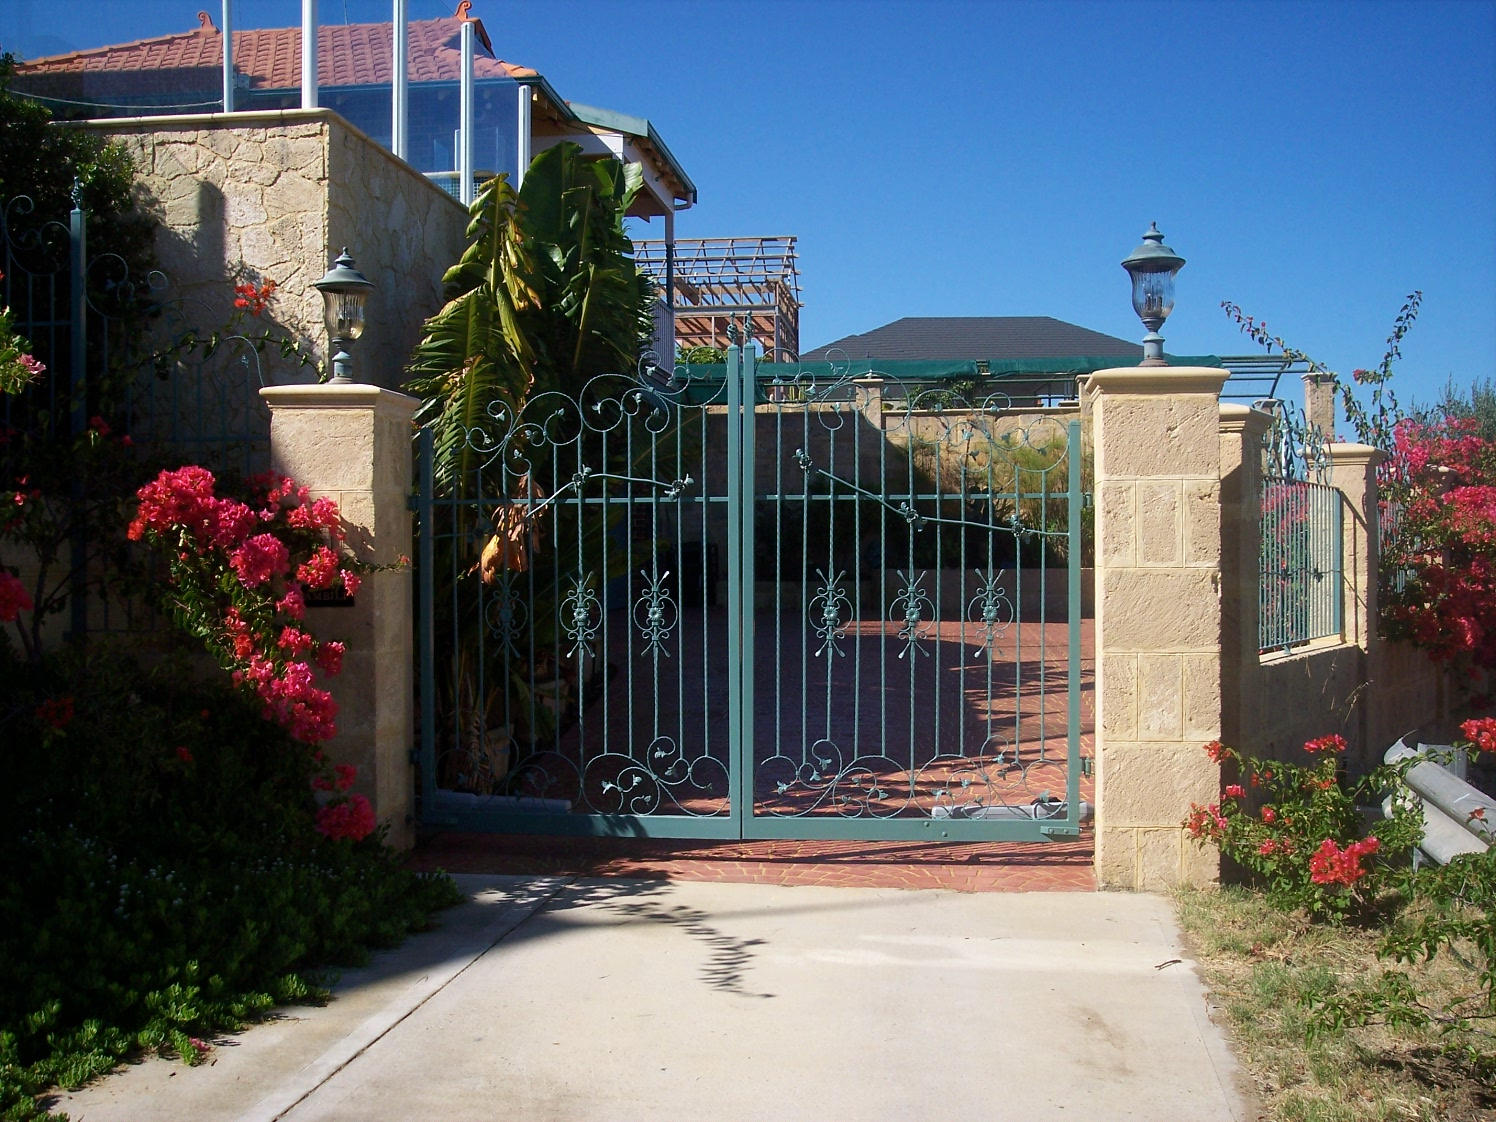 14-3-07 Access way into 21 Angwin Street.jpg